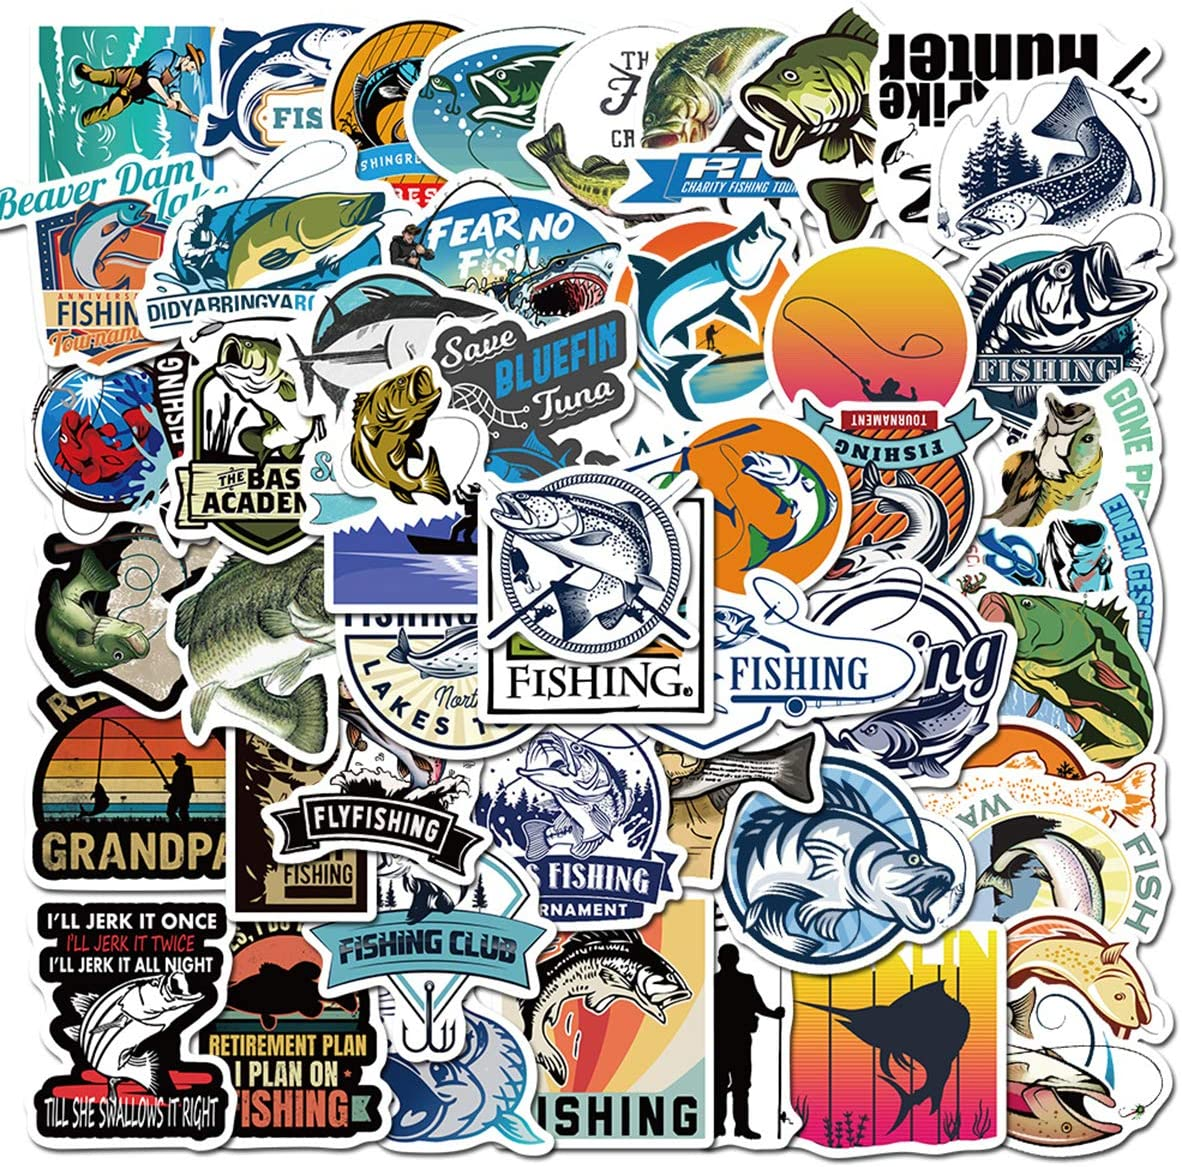 Go Fishing Stickers Many Kinds of Fly Fish Stickers 50Pcs Variety Vinyl Car Sticker Water Bottle Skateboard Motorcycle Phone Bicycle Luggage Guitar Bike Sticker Decal